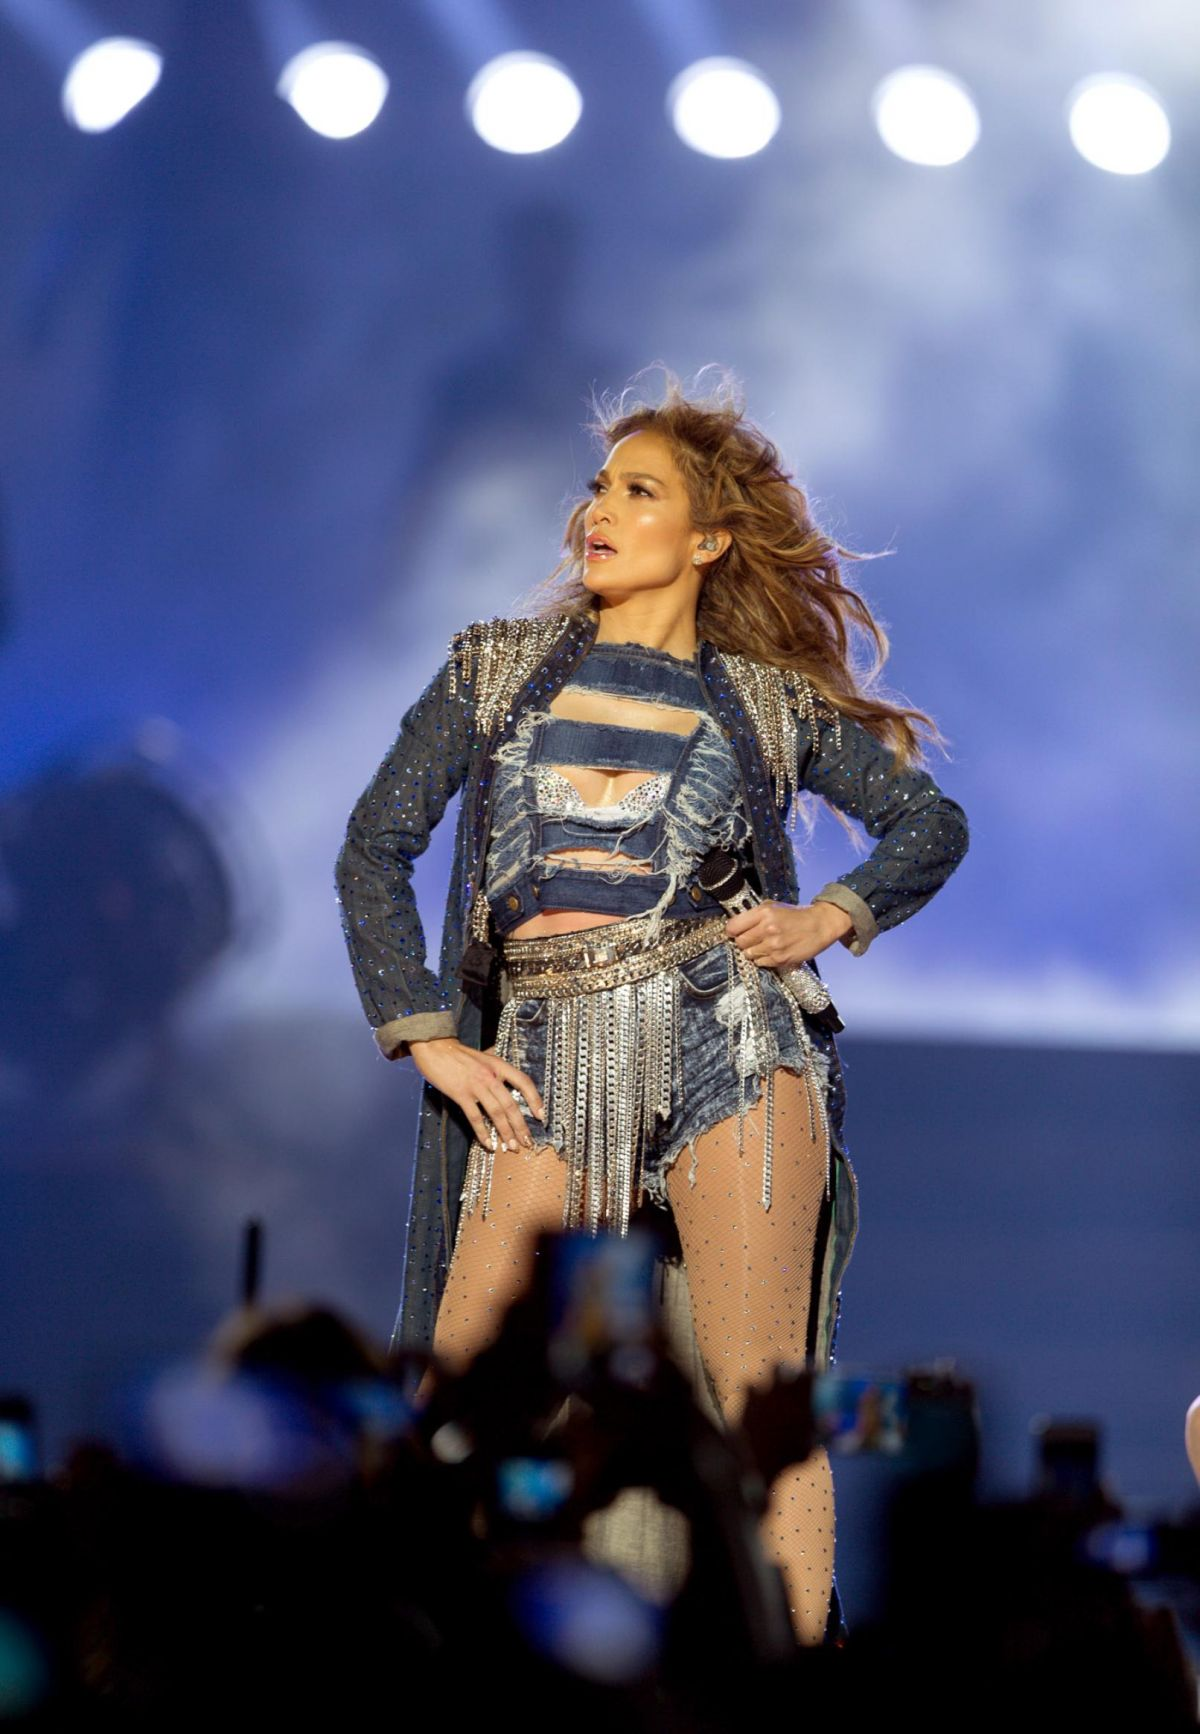 Jennifer lopez performing live at the meydan racecourse in Where does jennifer lopez live